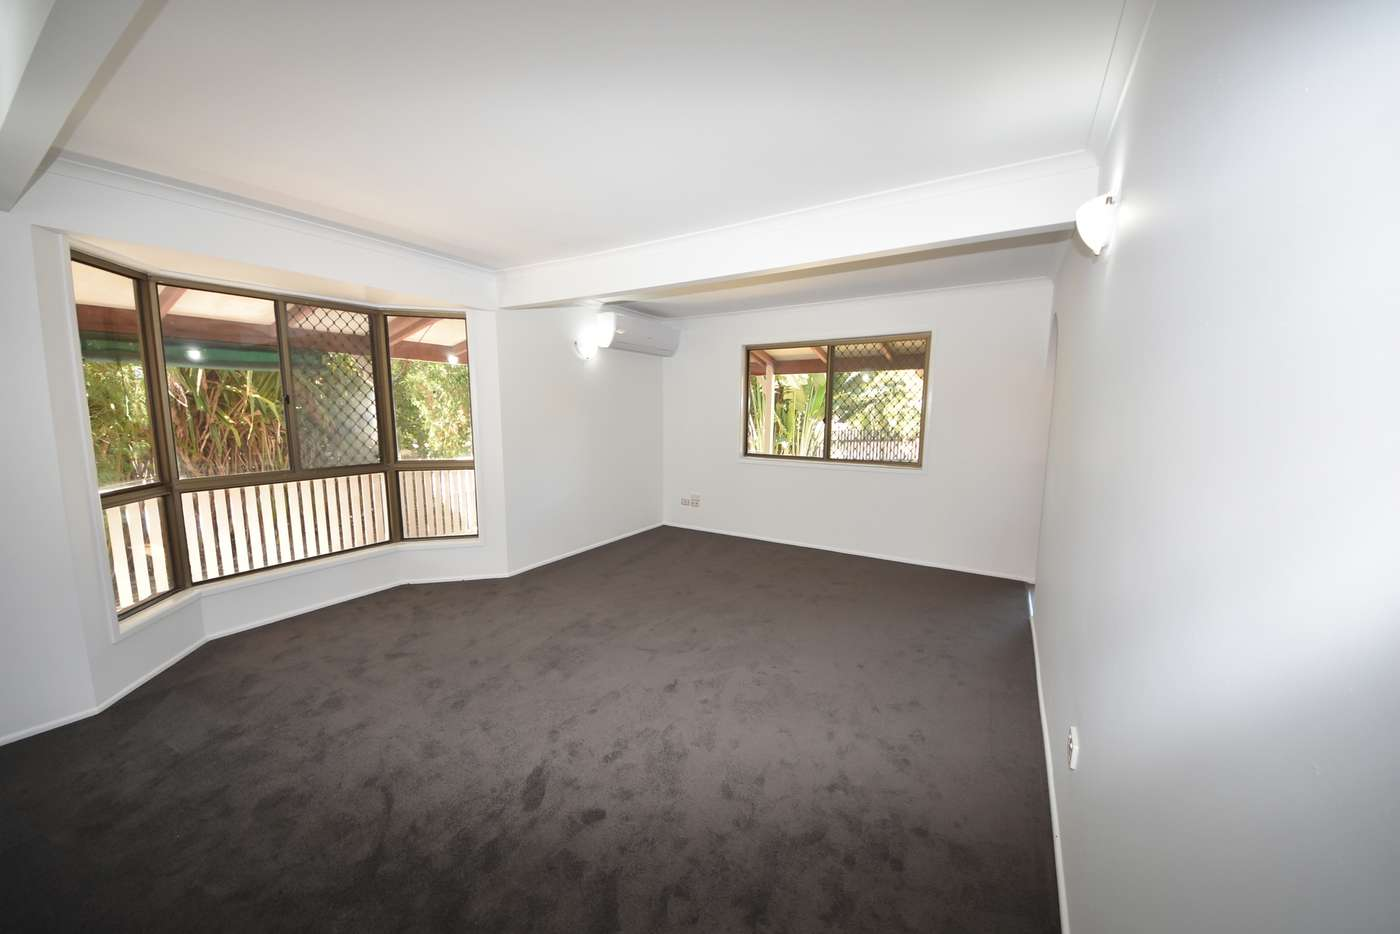 Sixth view of Homely house listing, 27 Pittman st, Beaconsfield QLD 4740